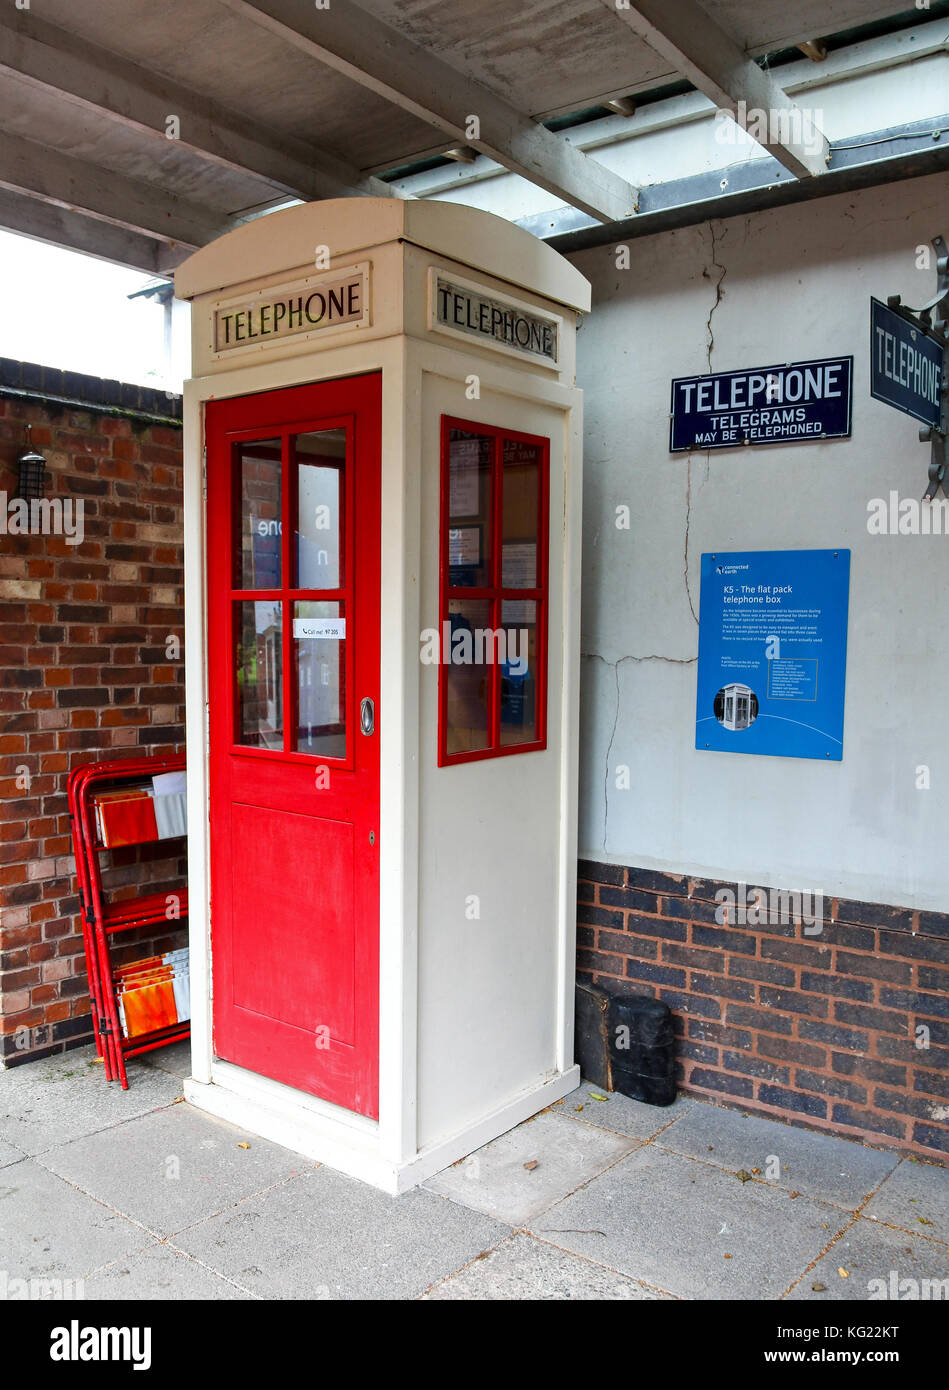 A K5 phone box at The National Telephone Kiosk Collection at the Avoncroft Museum of Buildings, Bromsgrove, Worcestershire, - Stock Image